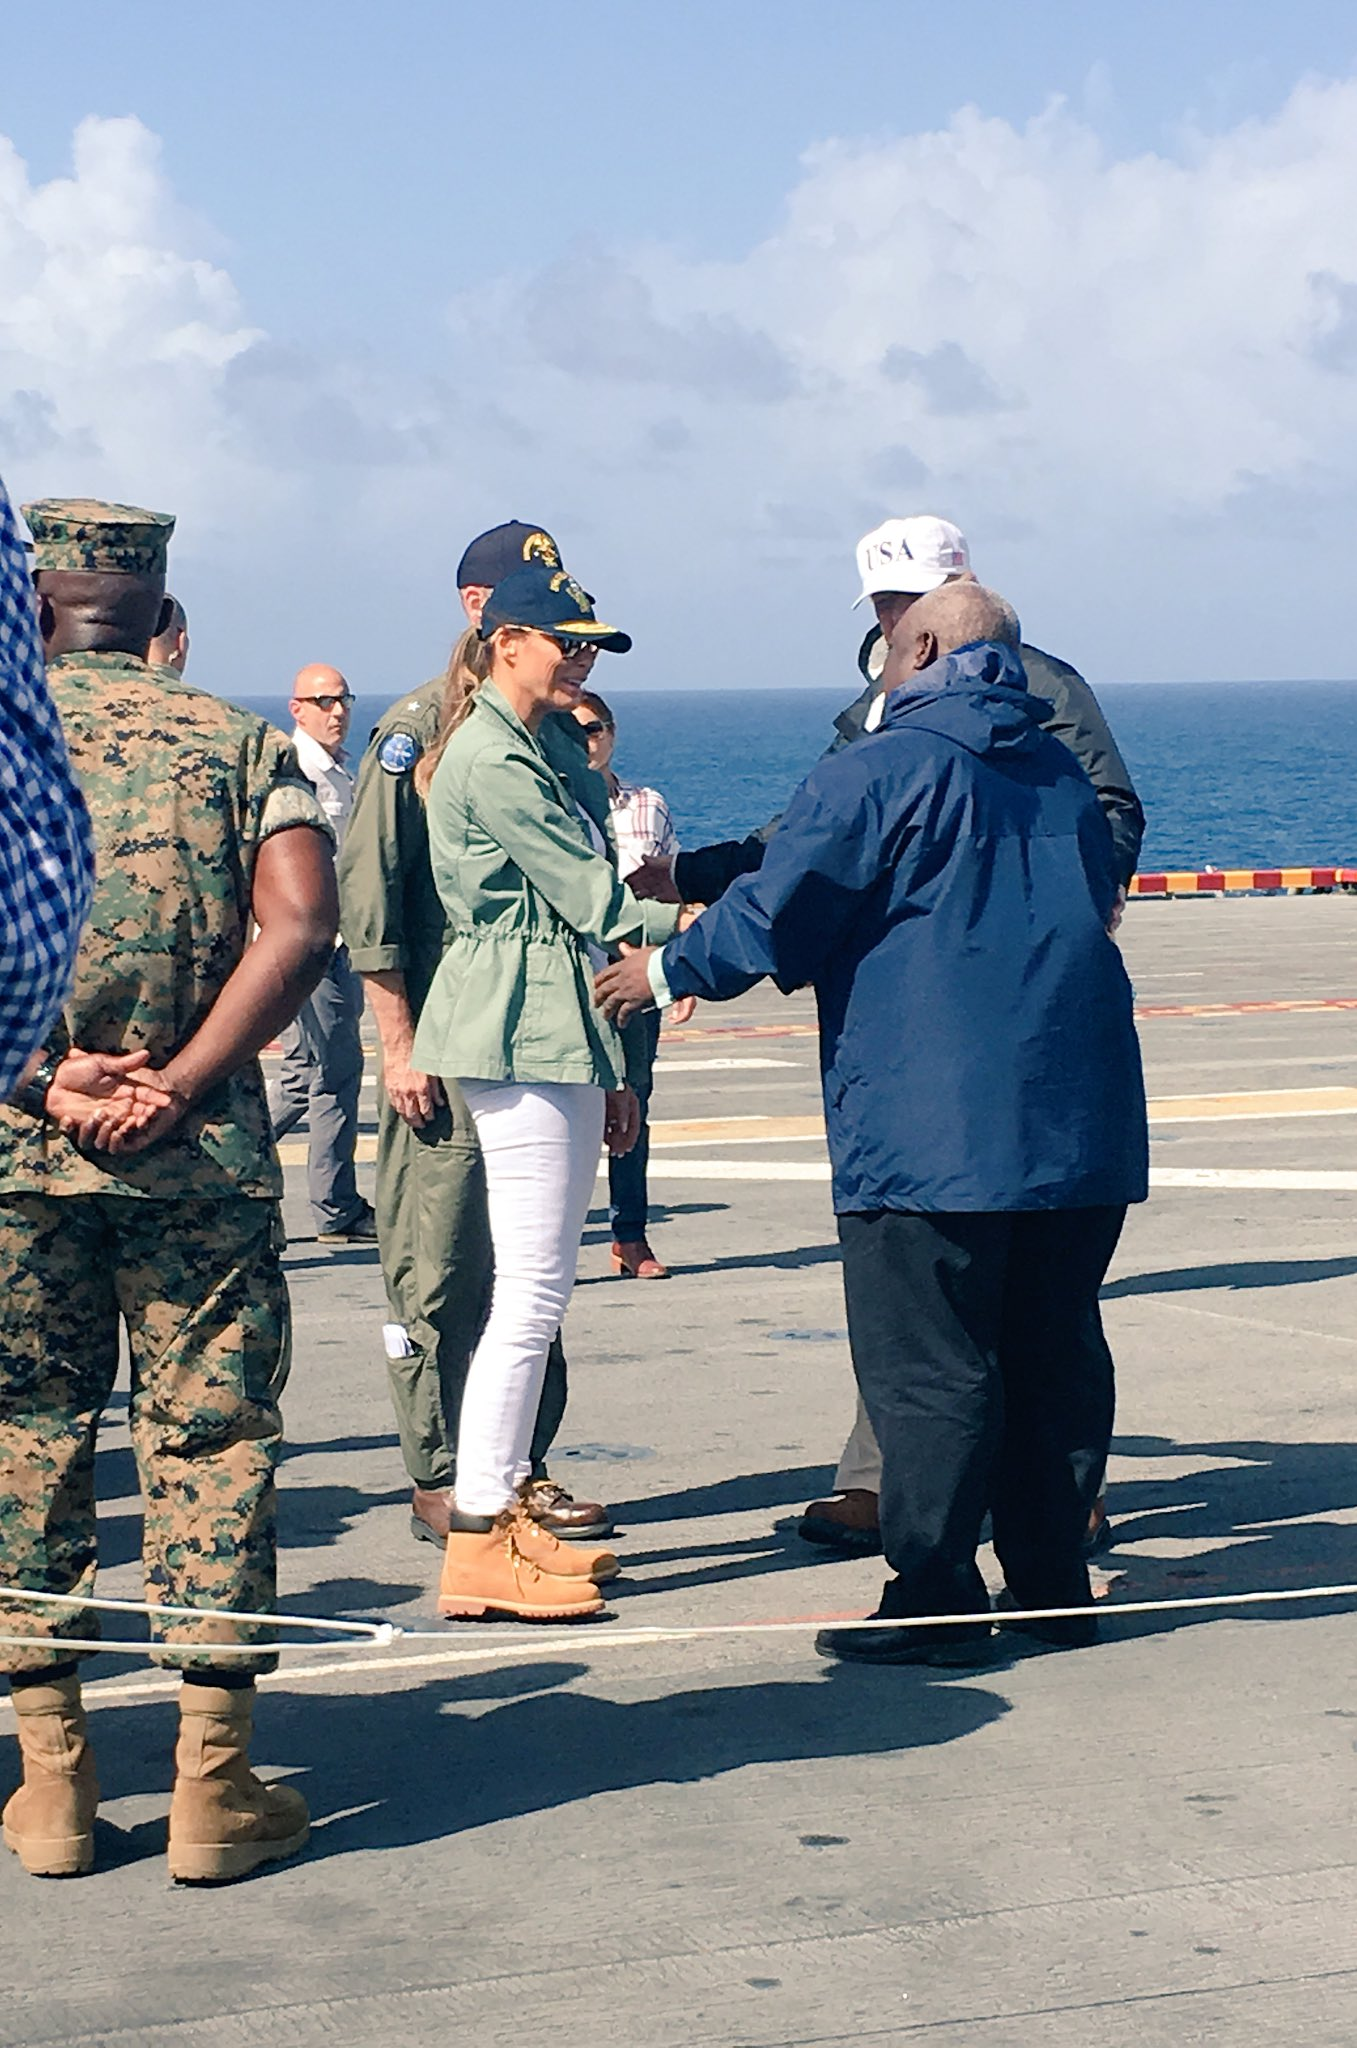 .@POTUS and @FLOTUS meet Gov. Mapp (USVI) on the USS Kearsarge. He was very pleased with federal response efforts. https://t.co/9iP66u46XZ